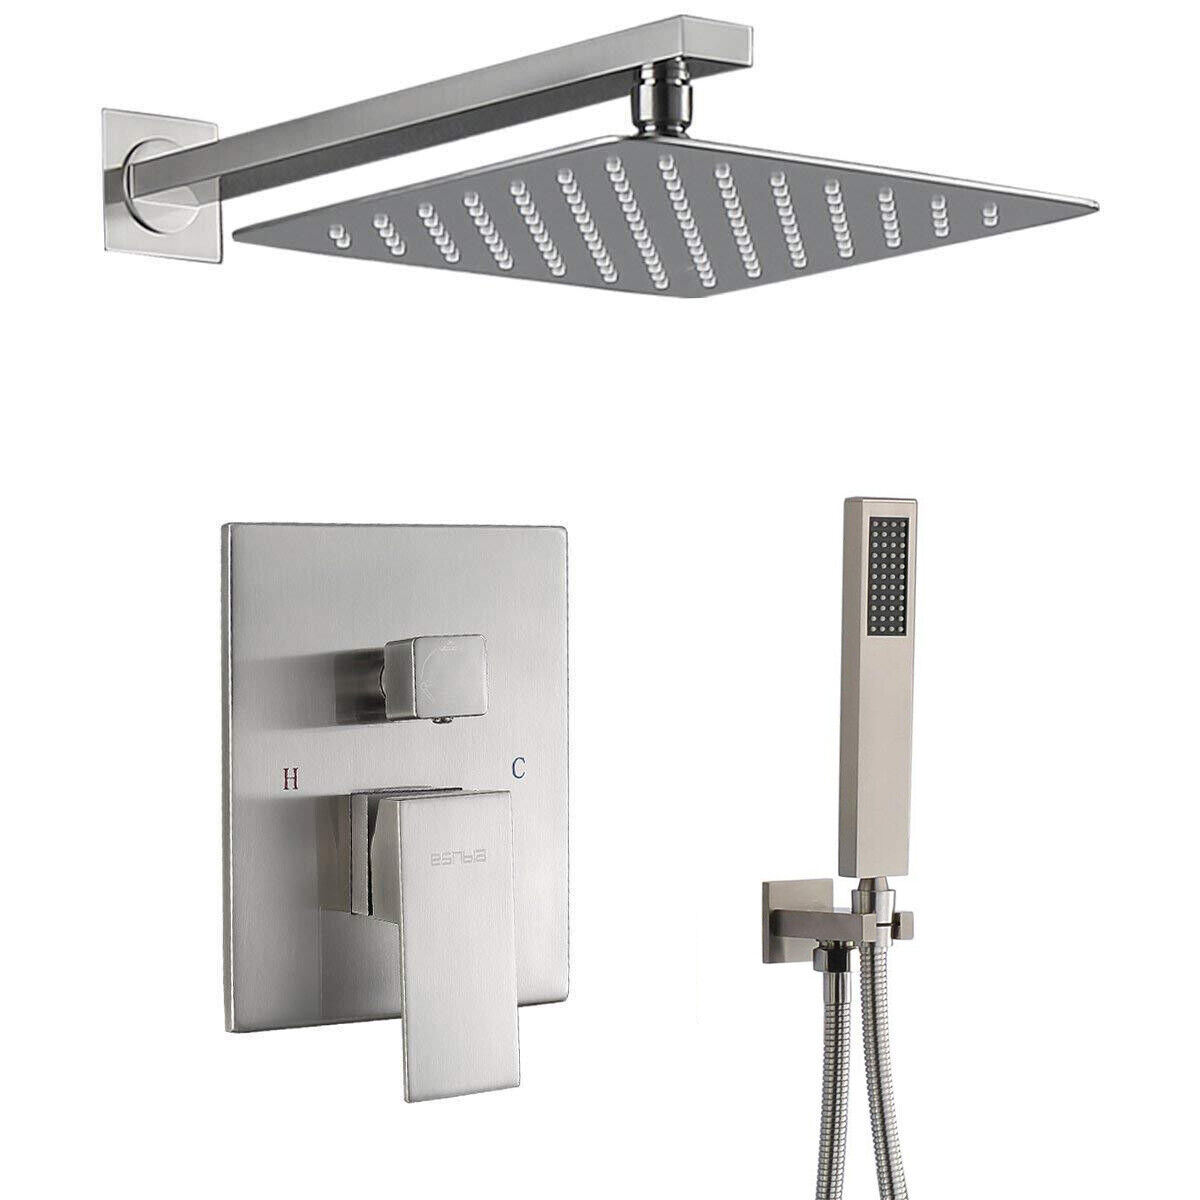 Shower Faucet Set Rainfall Shower Head With Hand Shower